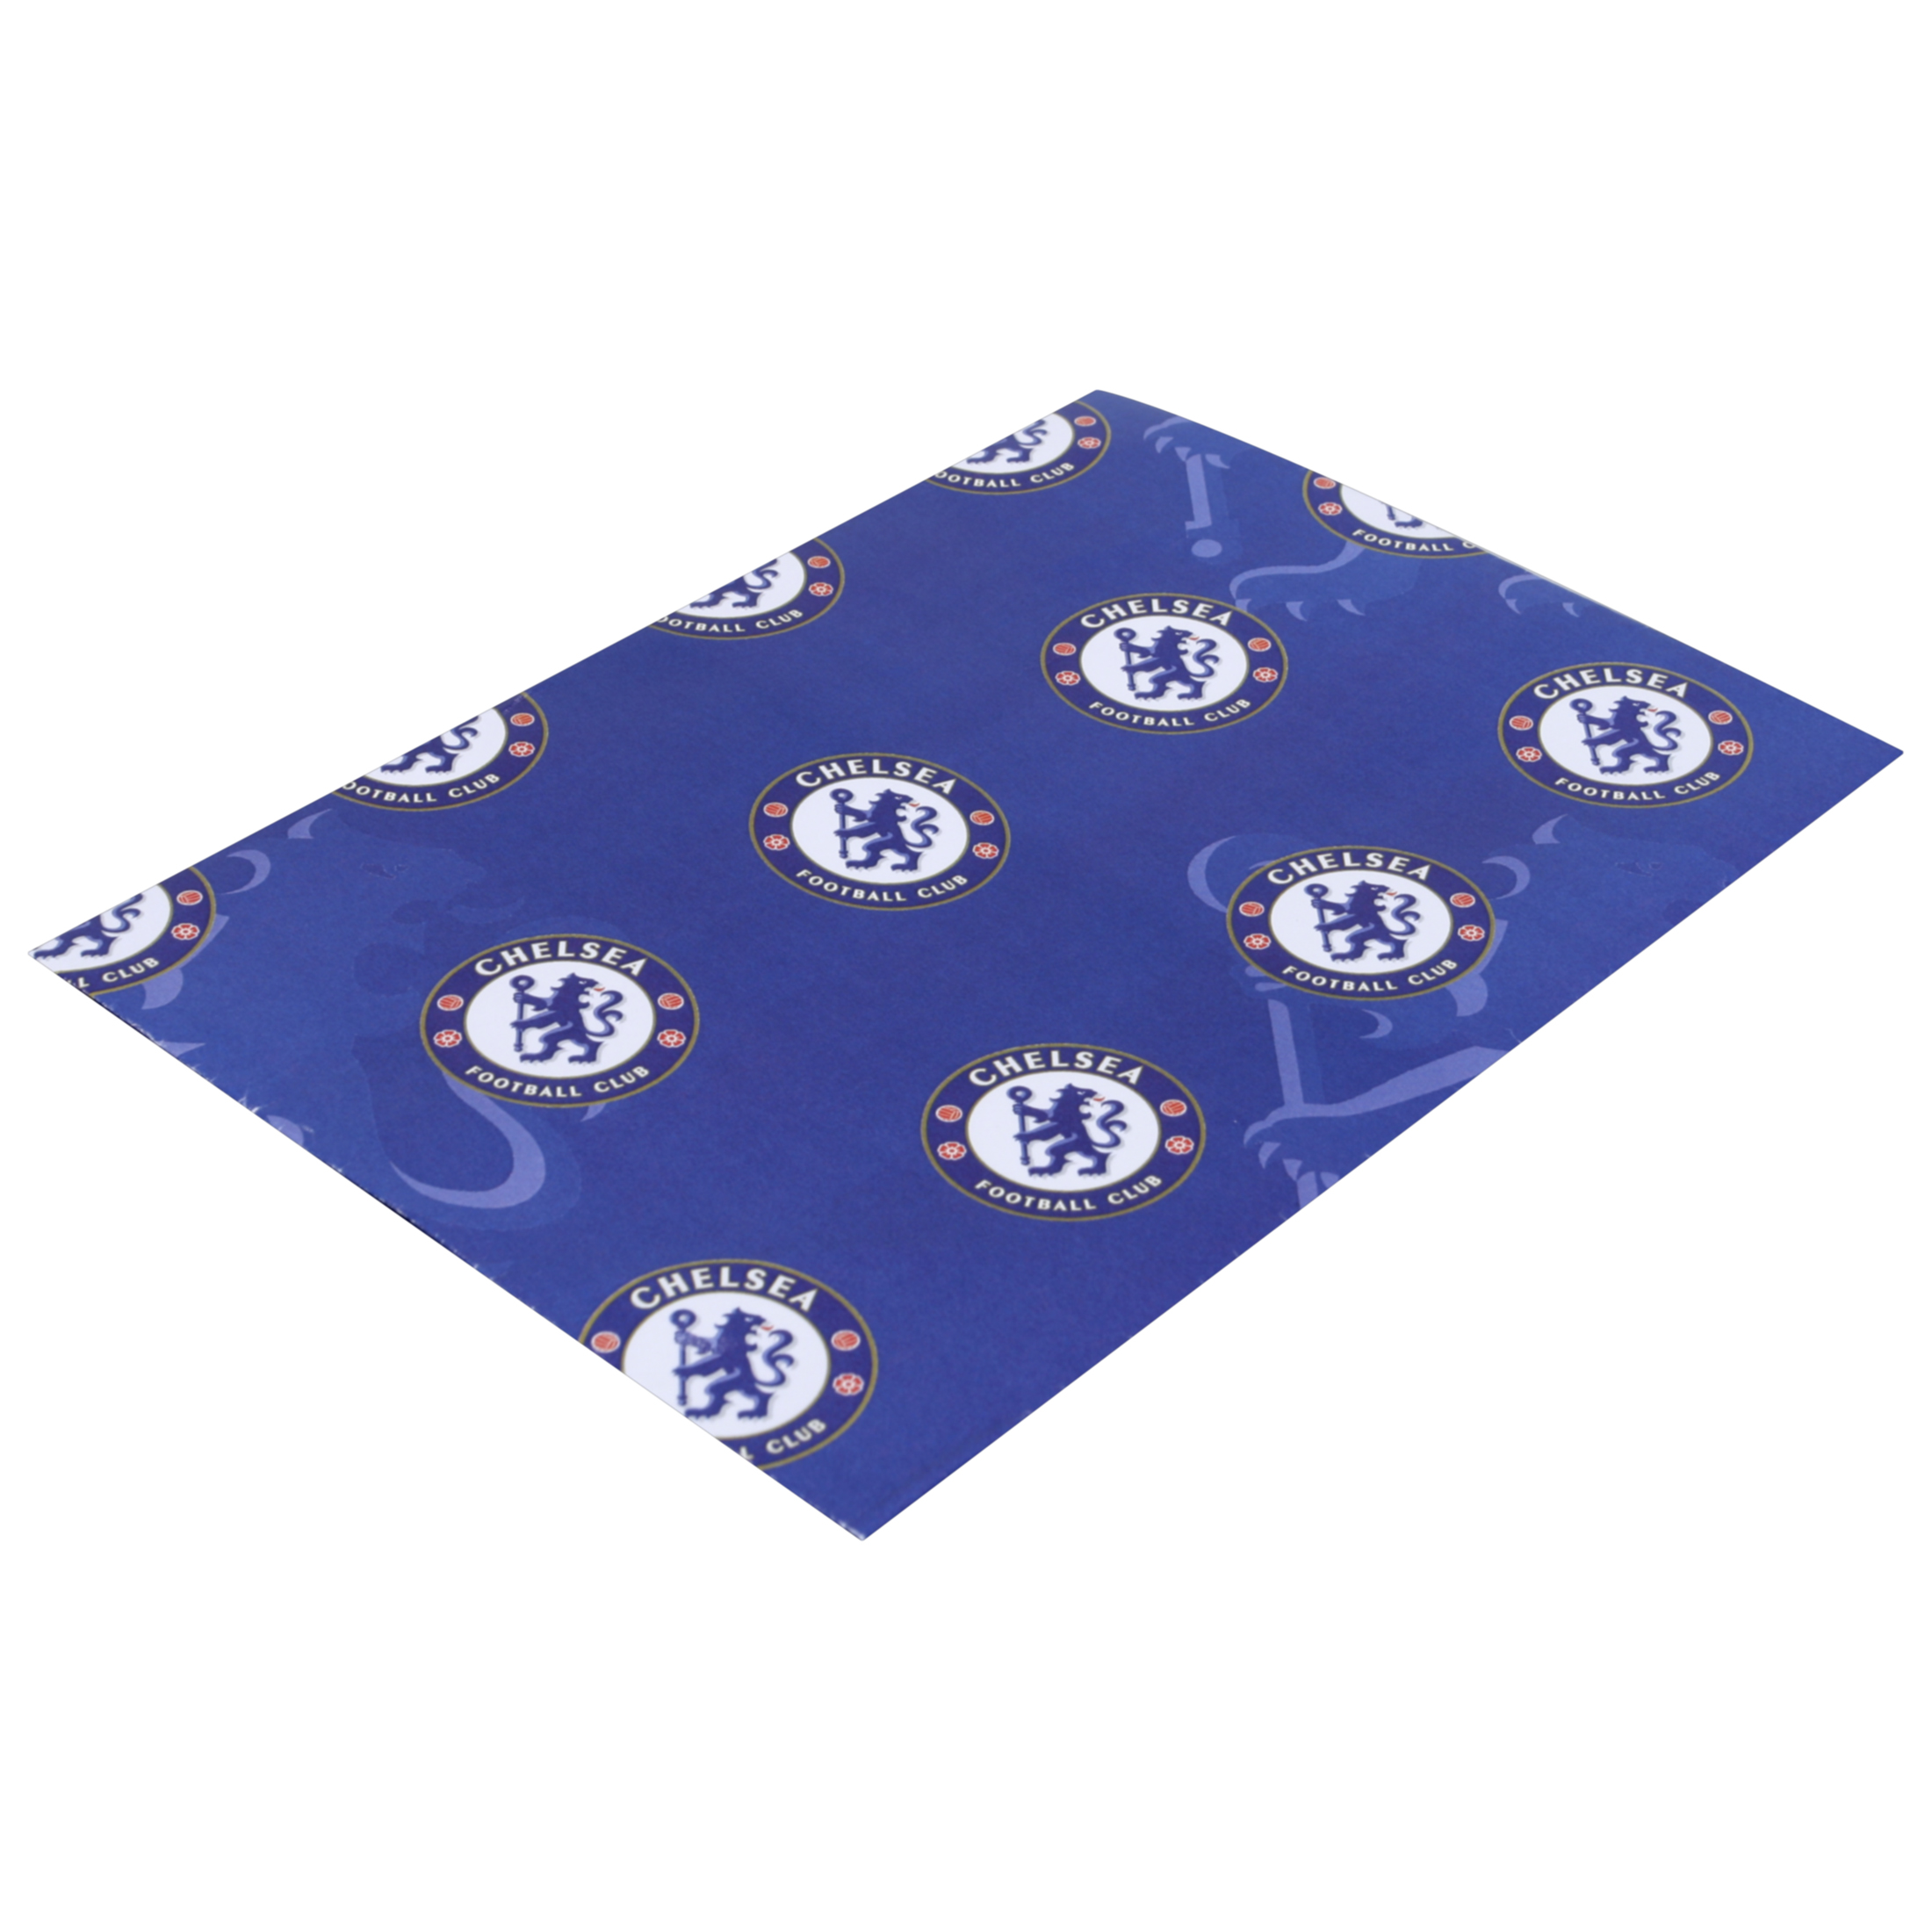 Chelsea Gift Wrap and Tags